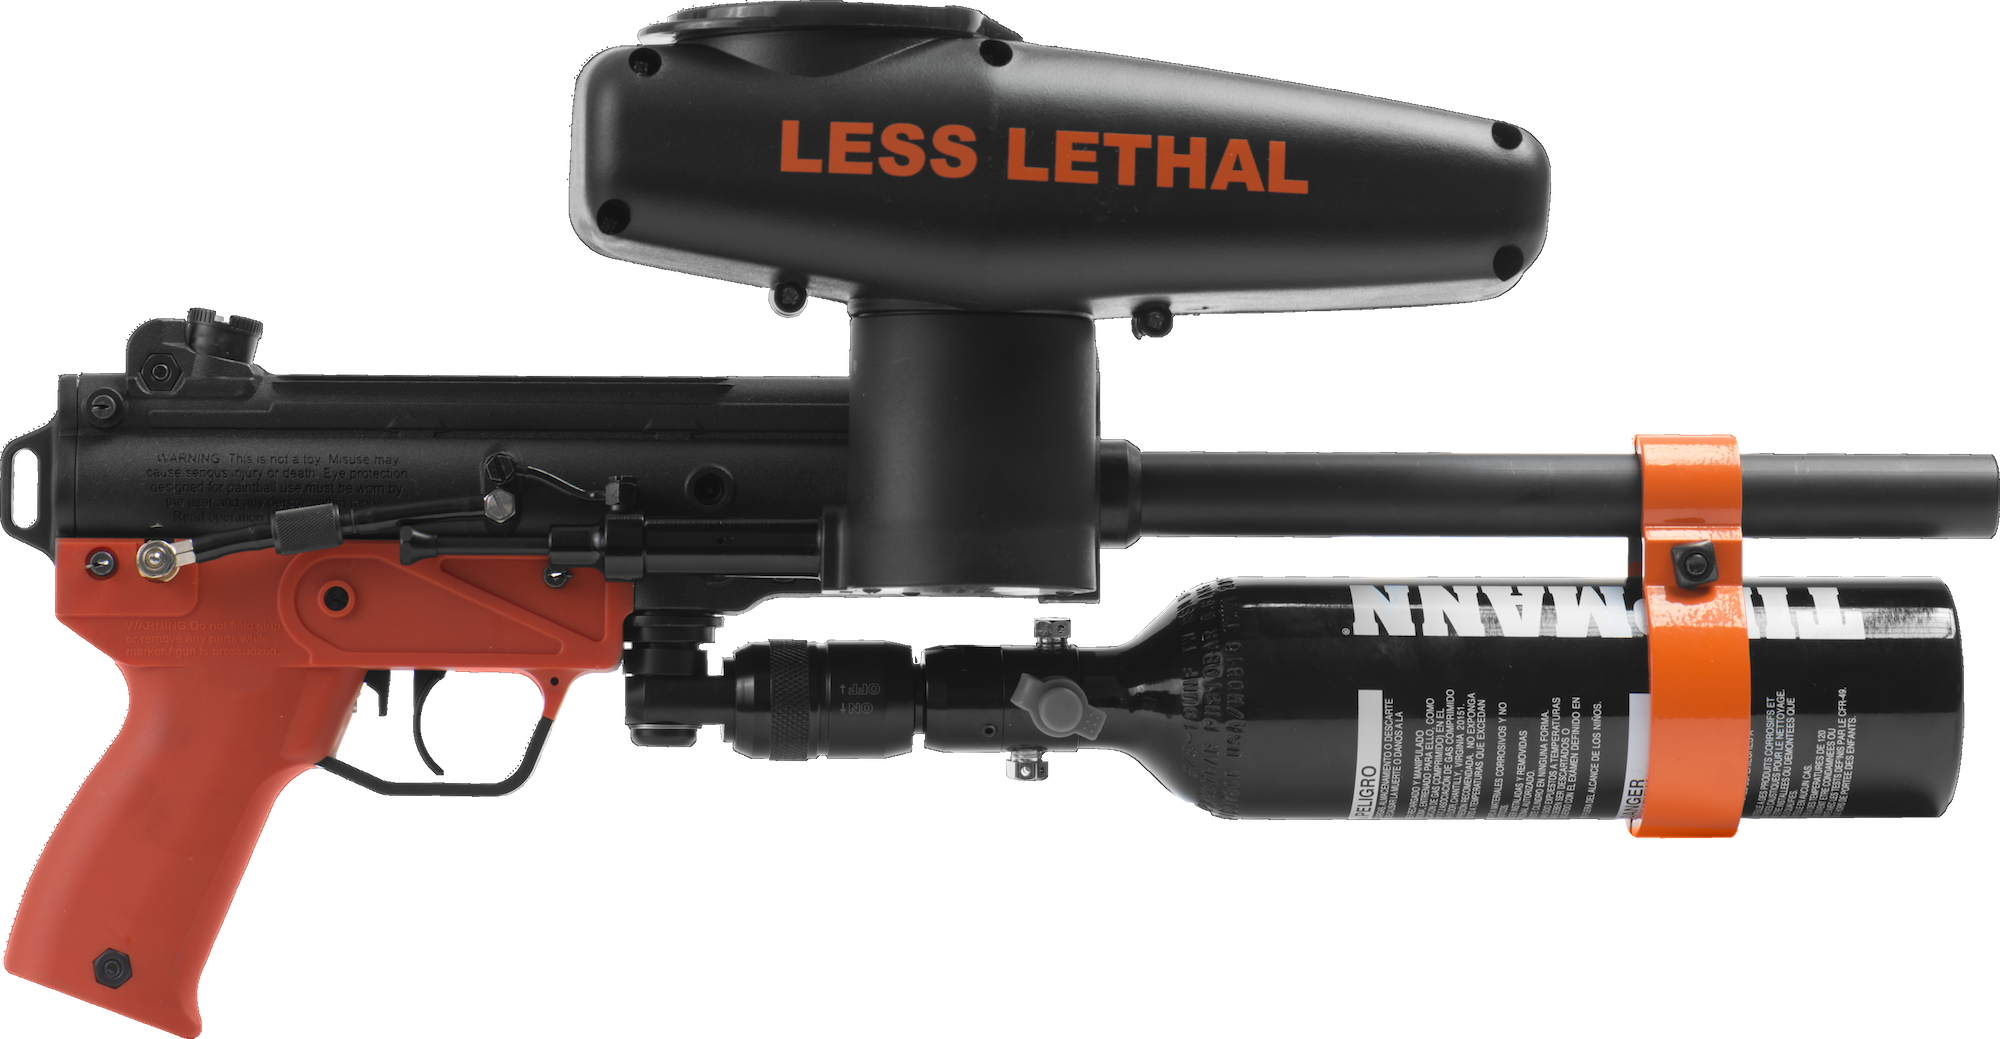 MISSION LESS LETHAL MLR LAUNCHER FULL AUTO